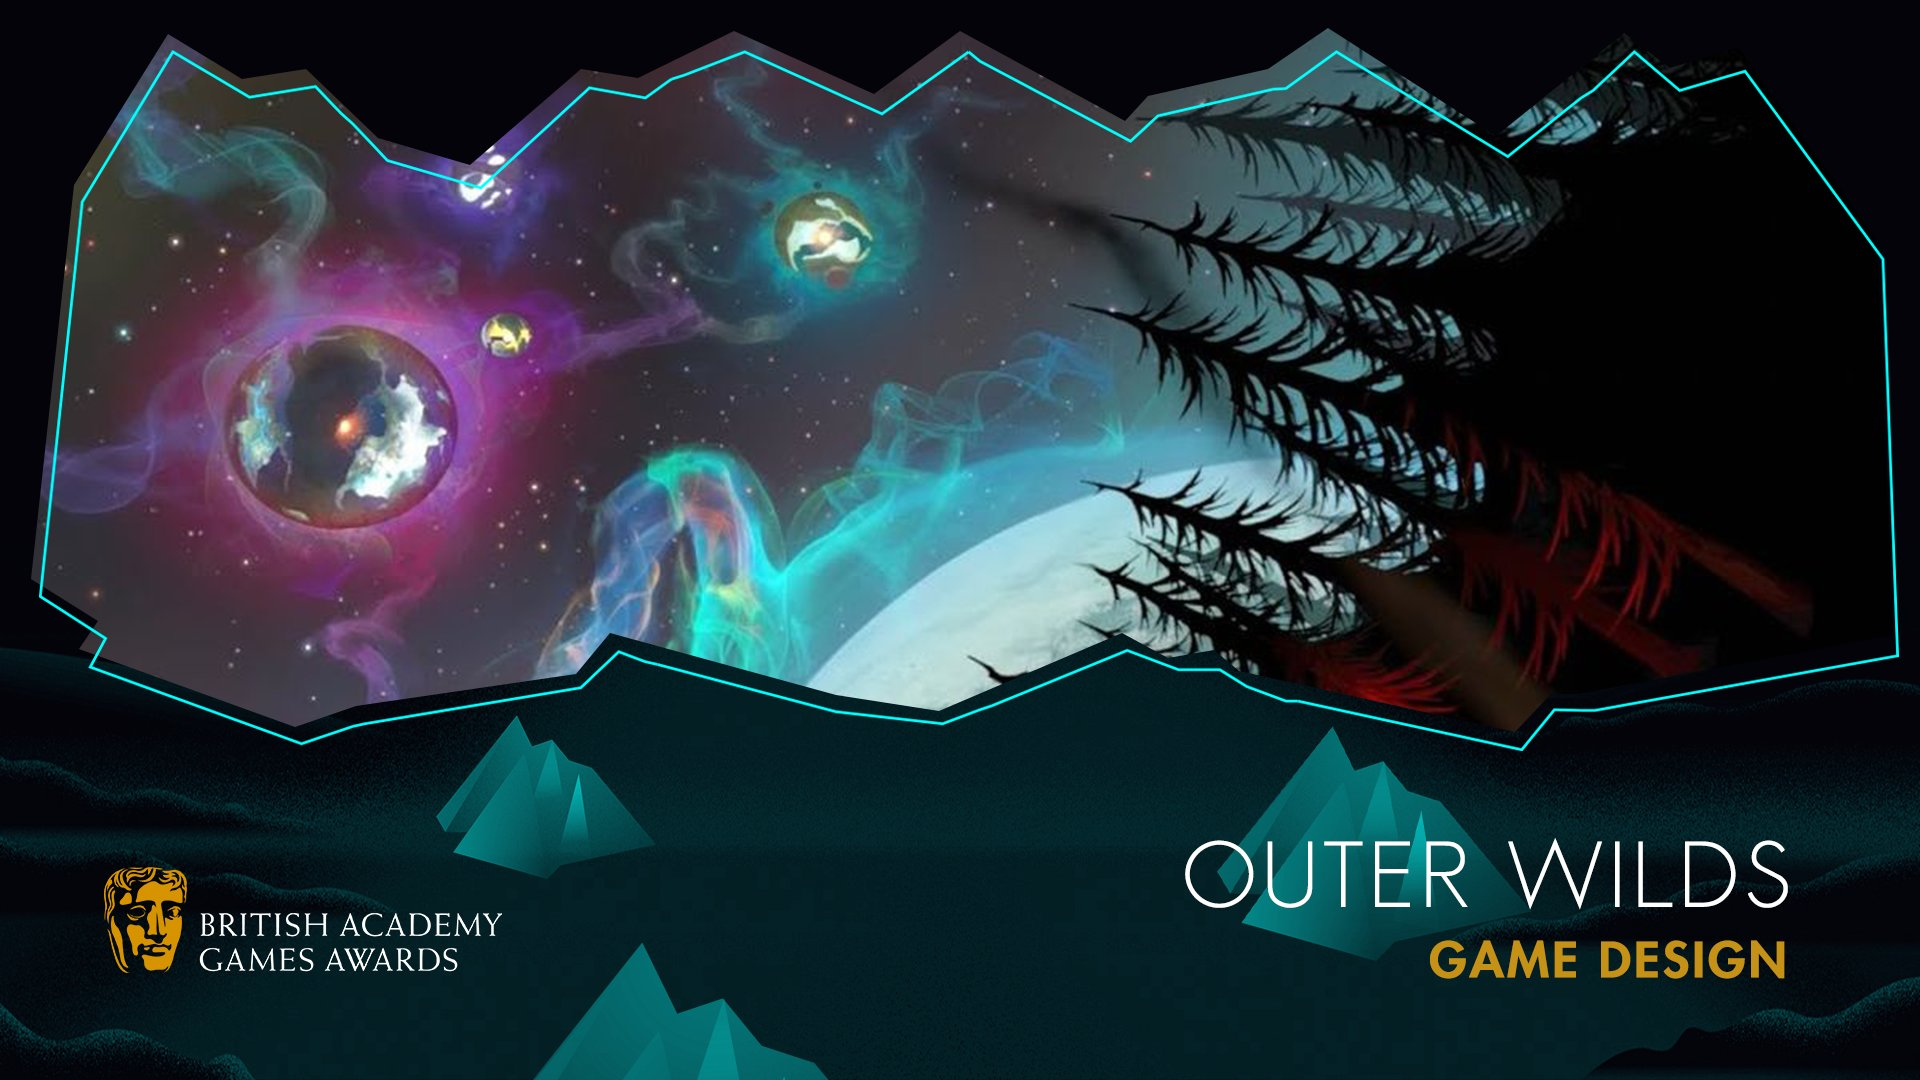 Winner Bafta Games Awards 2020 Game Design